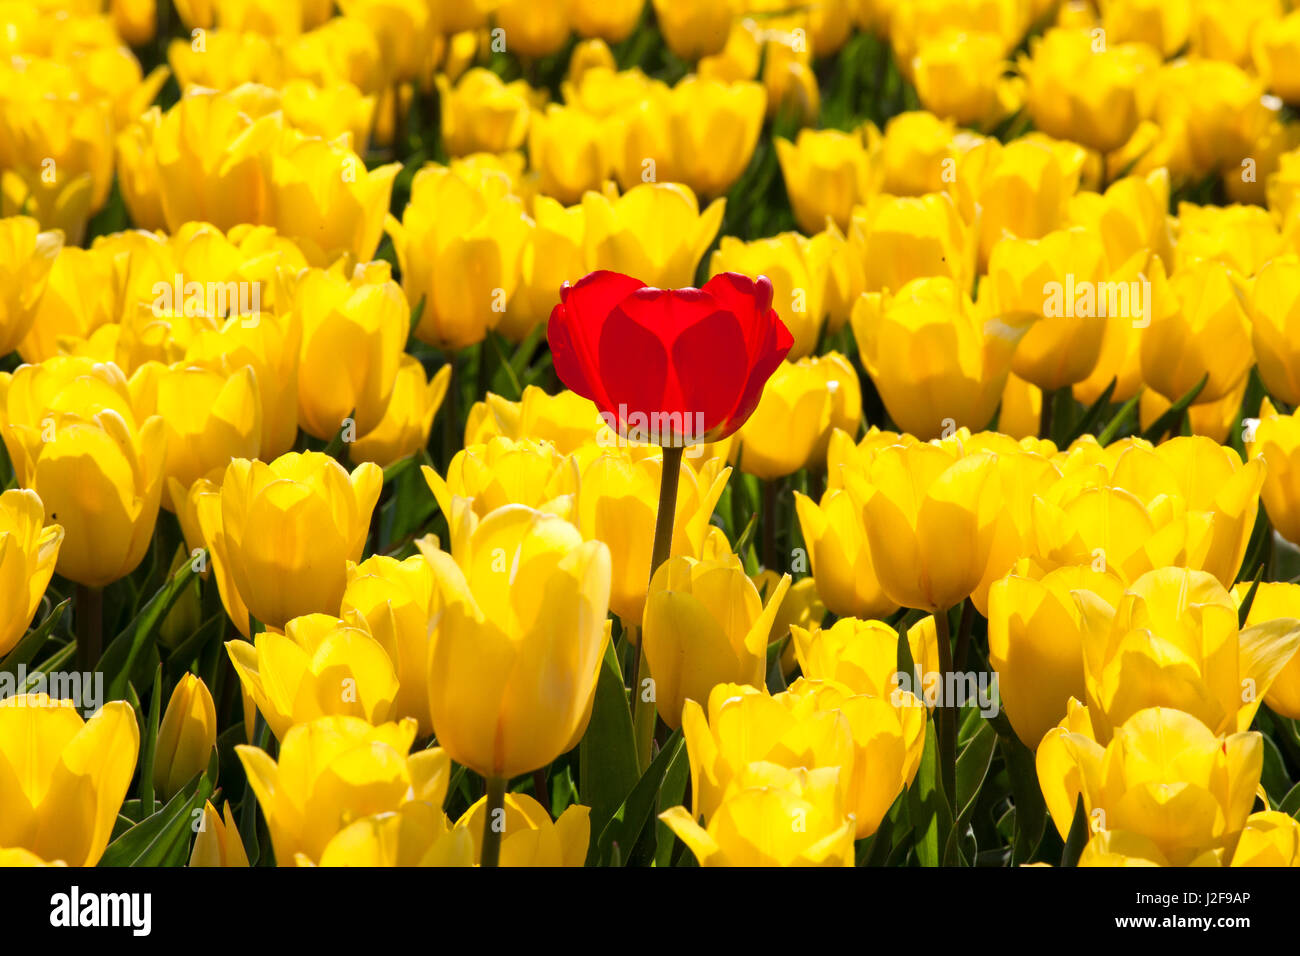 field of tulips in the Northeast polder part of Flevoland as a field crop for cultivation with a bulb of a different - Stock Image